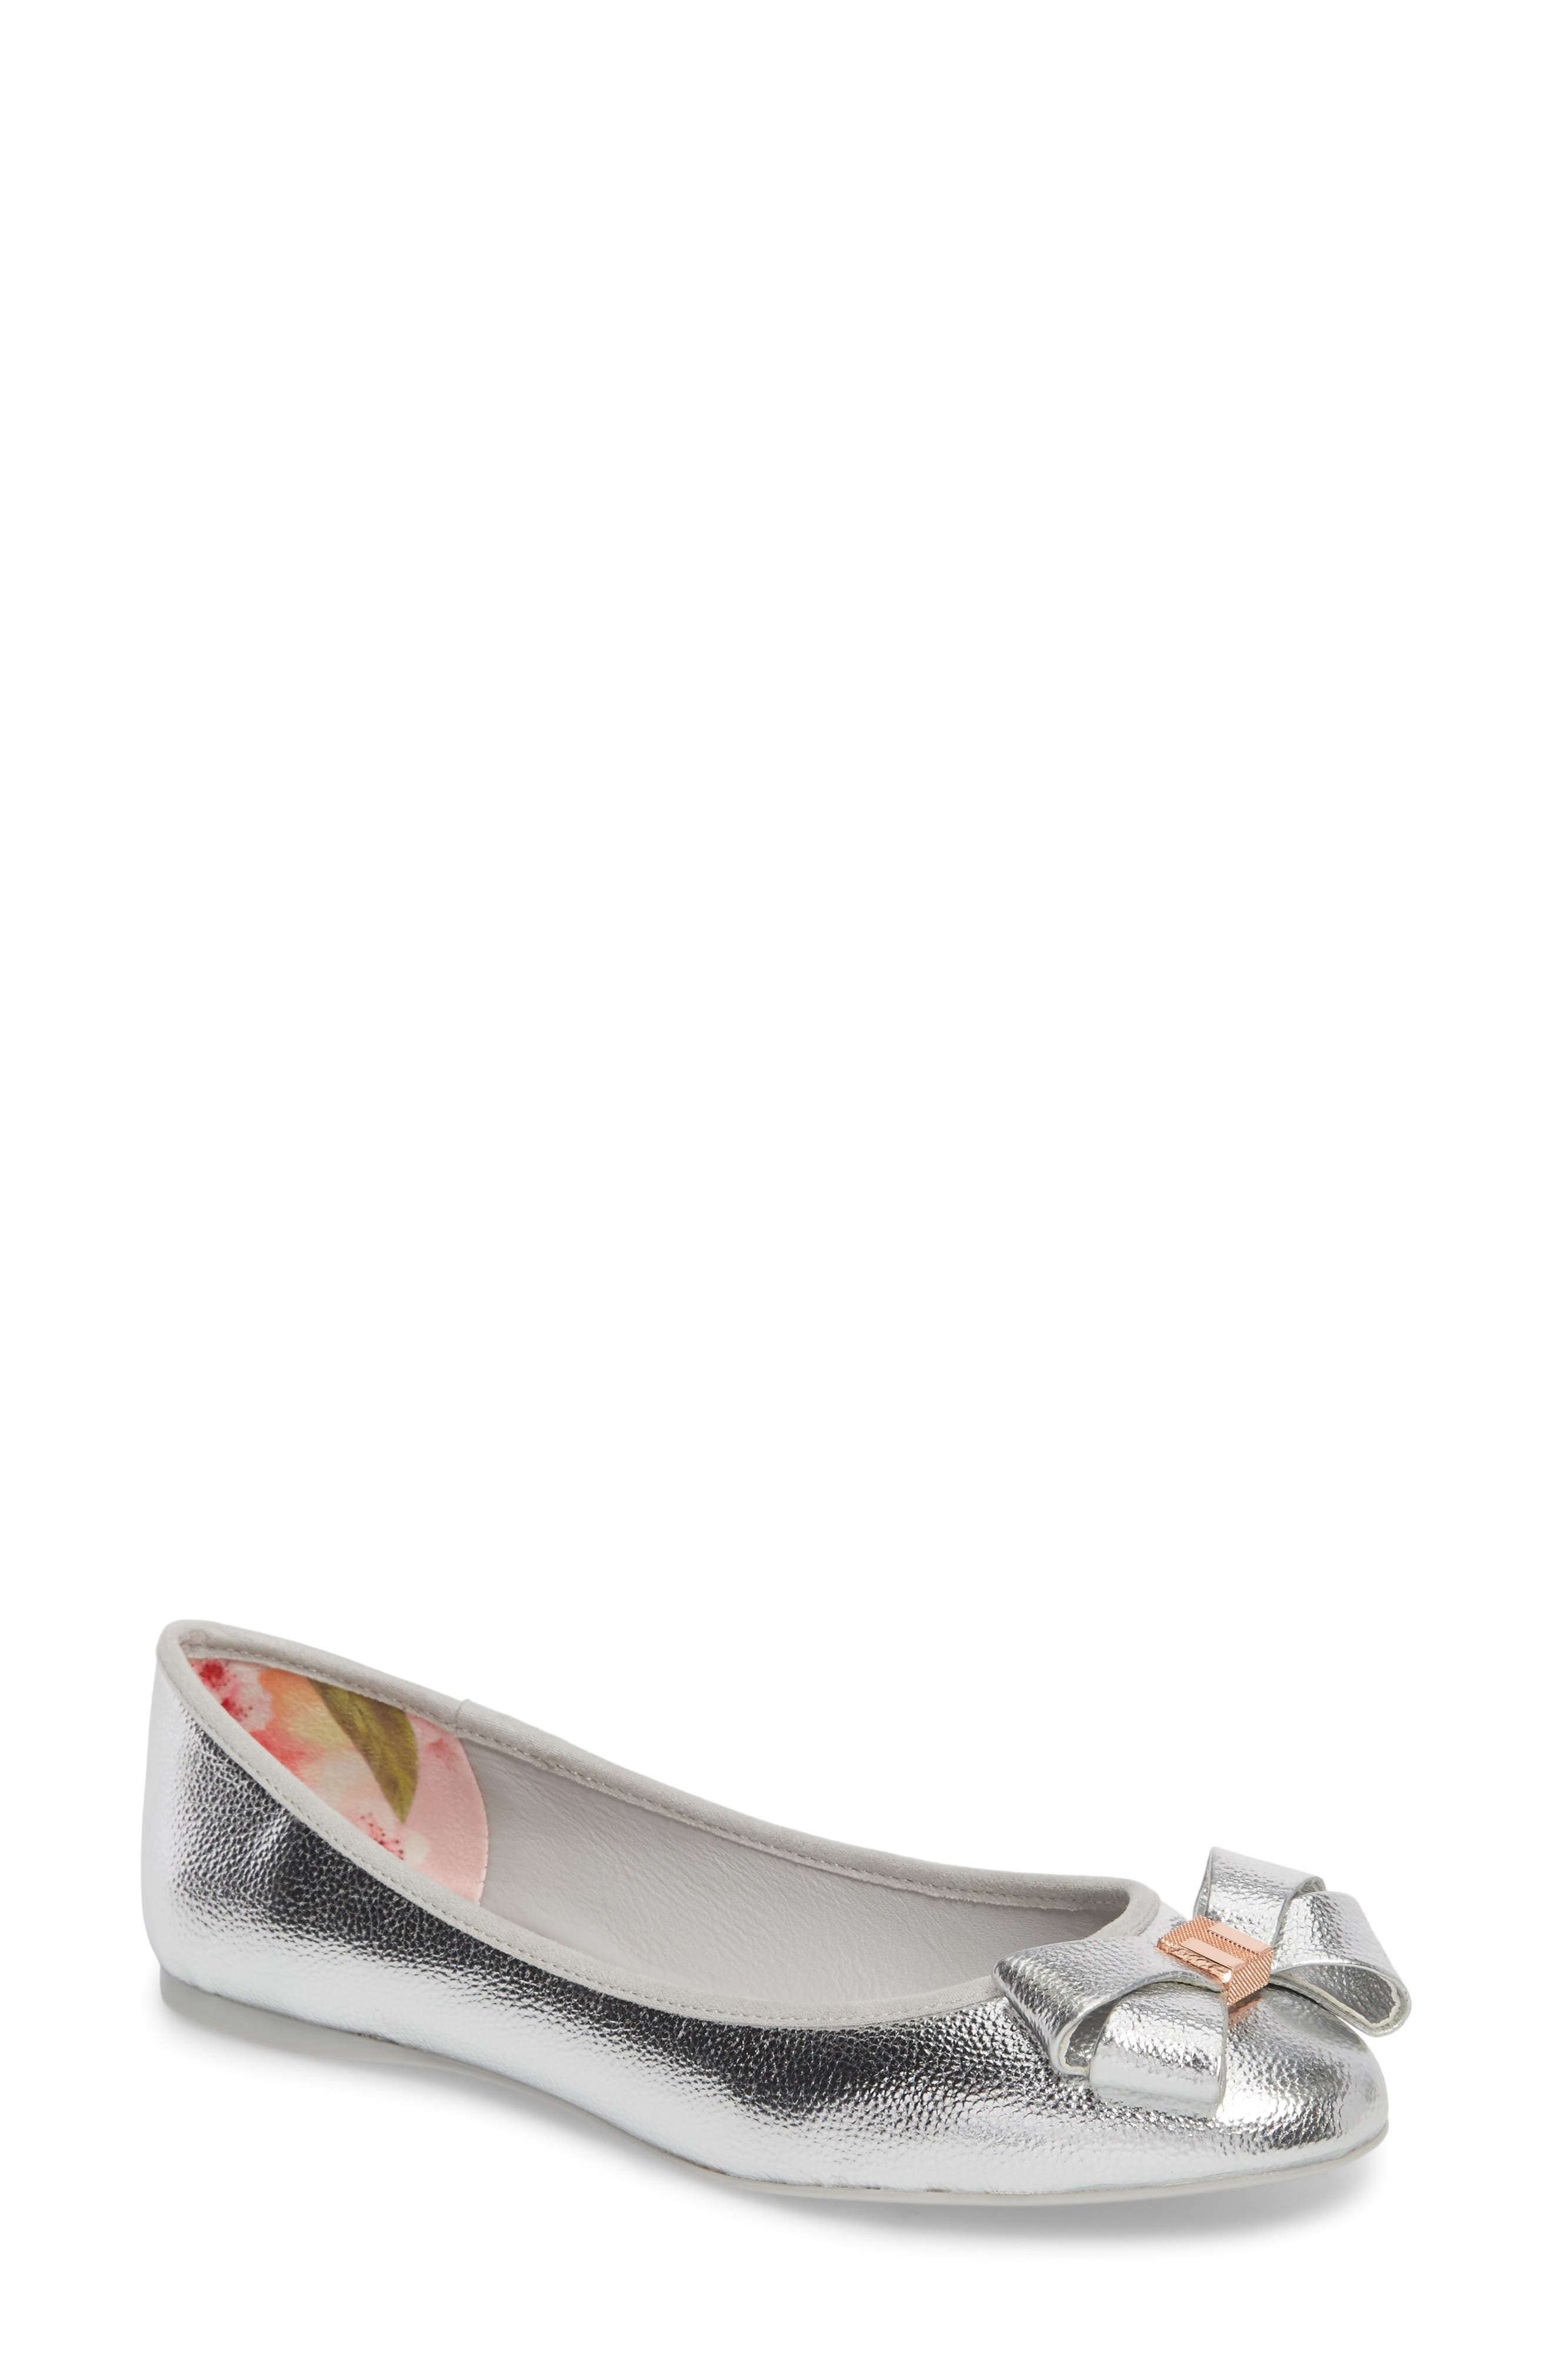 Immet Ballet Flat,                             Main thumbnail 1, color,                             SILVER